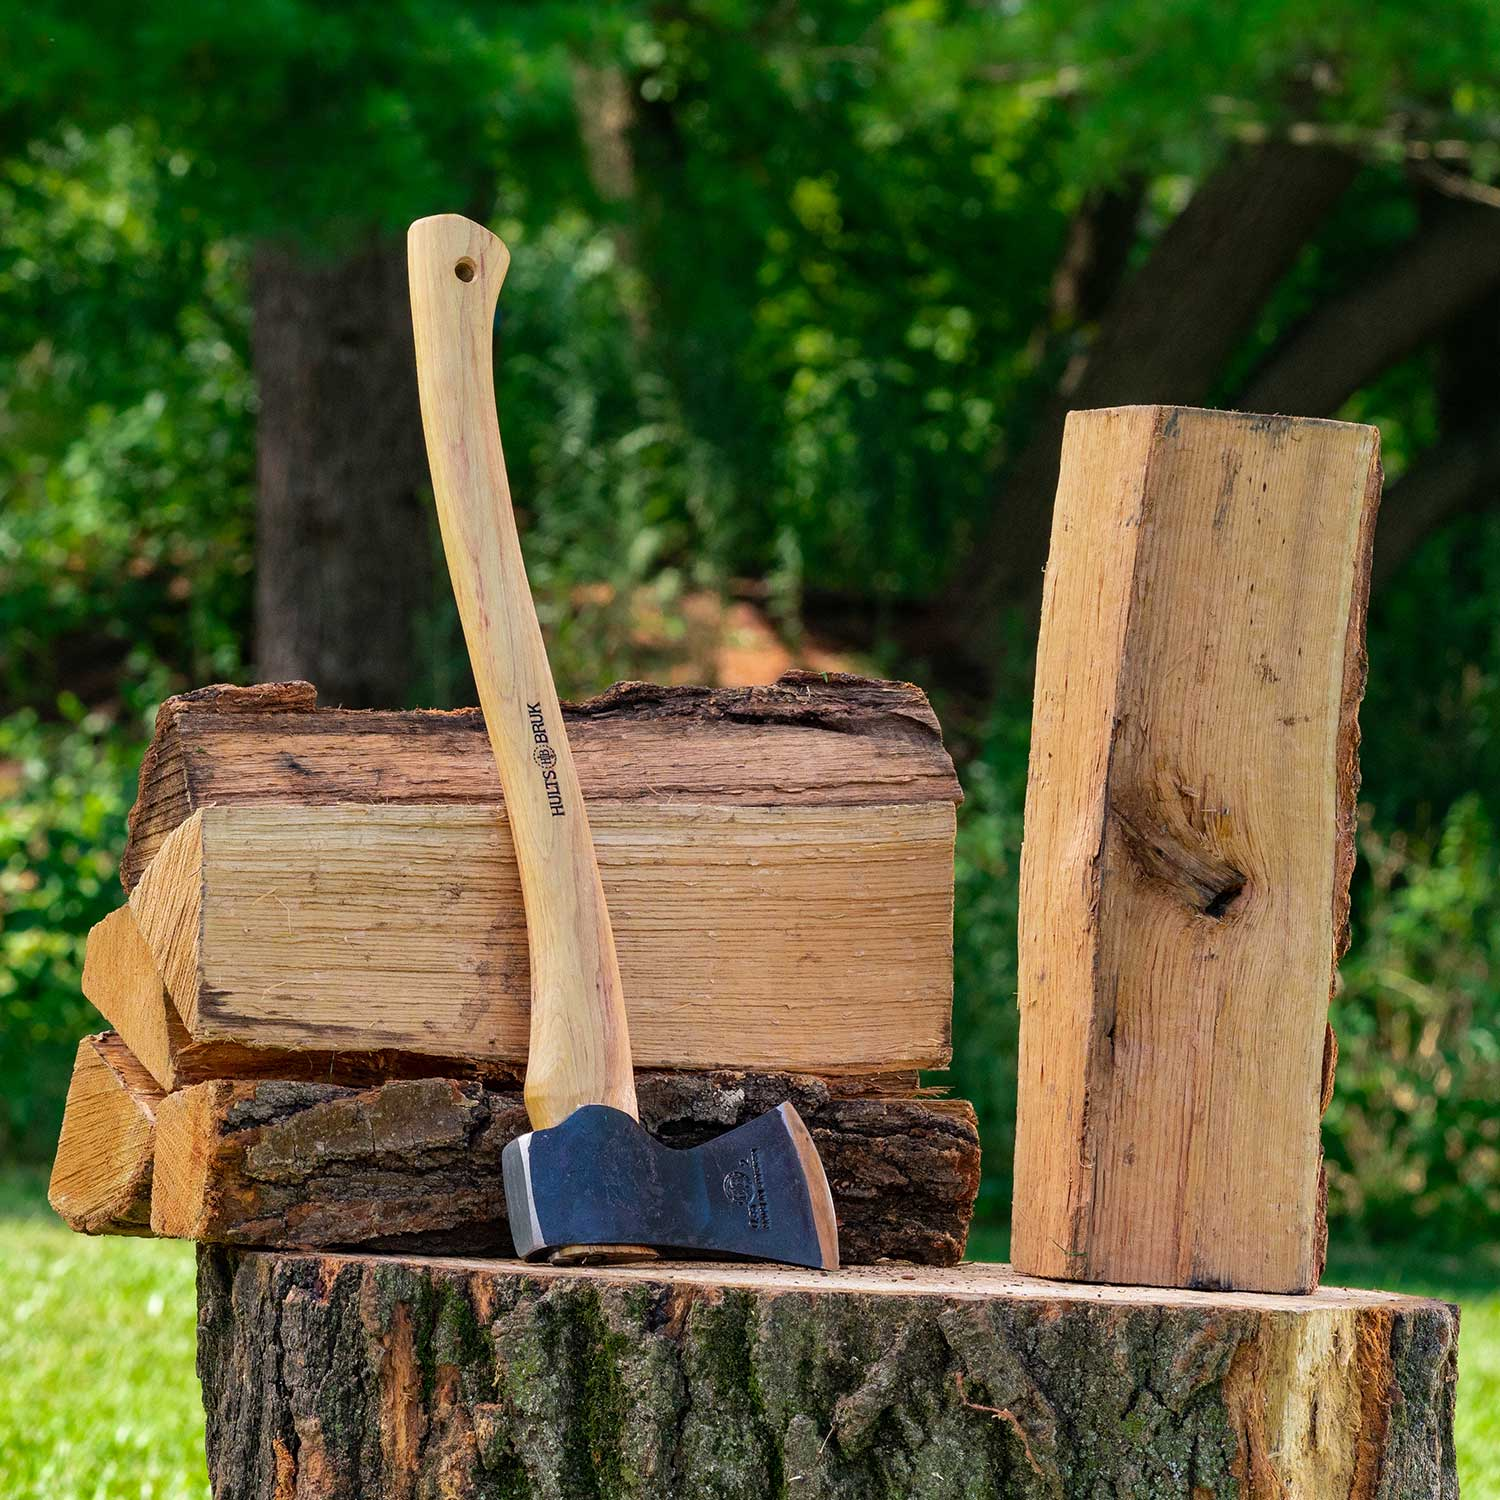 Oak Firewood - $54 $99 $159 Our oak firewood is very solid, heavy, and has a slow-burning process that emits steady warmth. Oak has an exceptionally intense, long burn-time and produces a nice aroma when burnt which is one reason restaurants use oak for cooking.